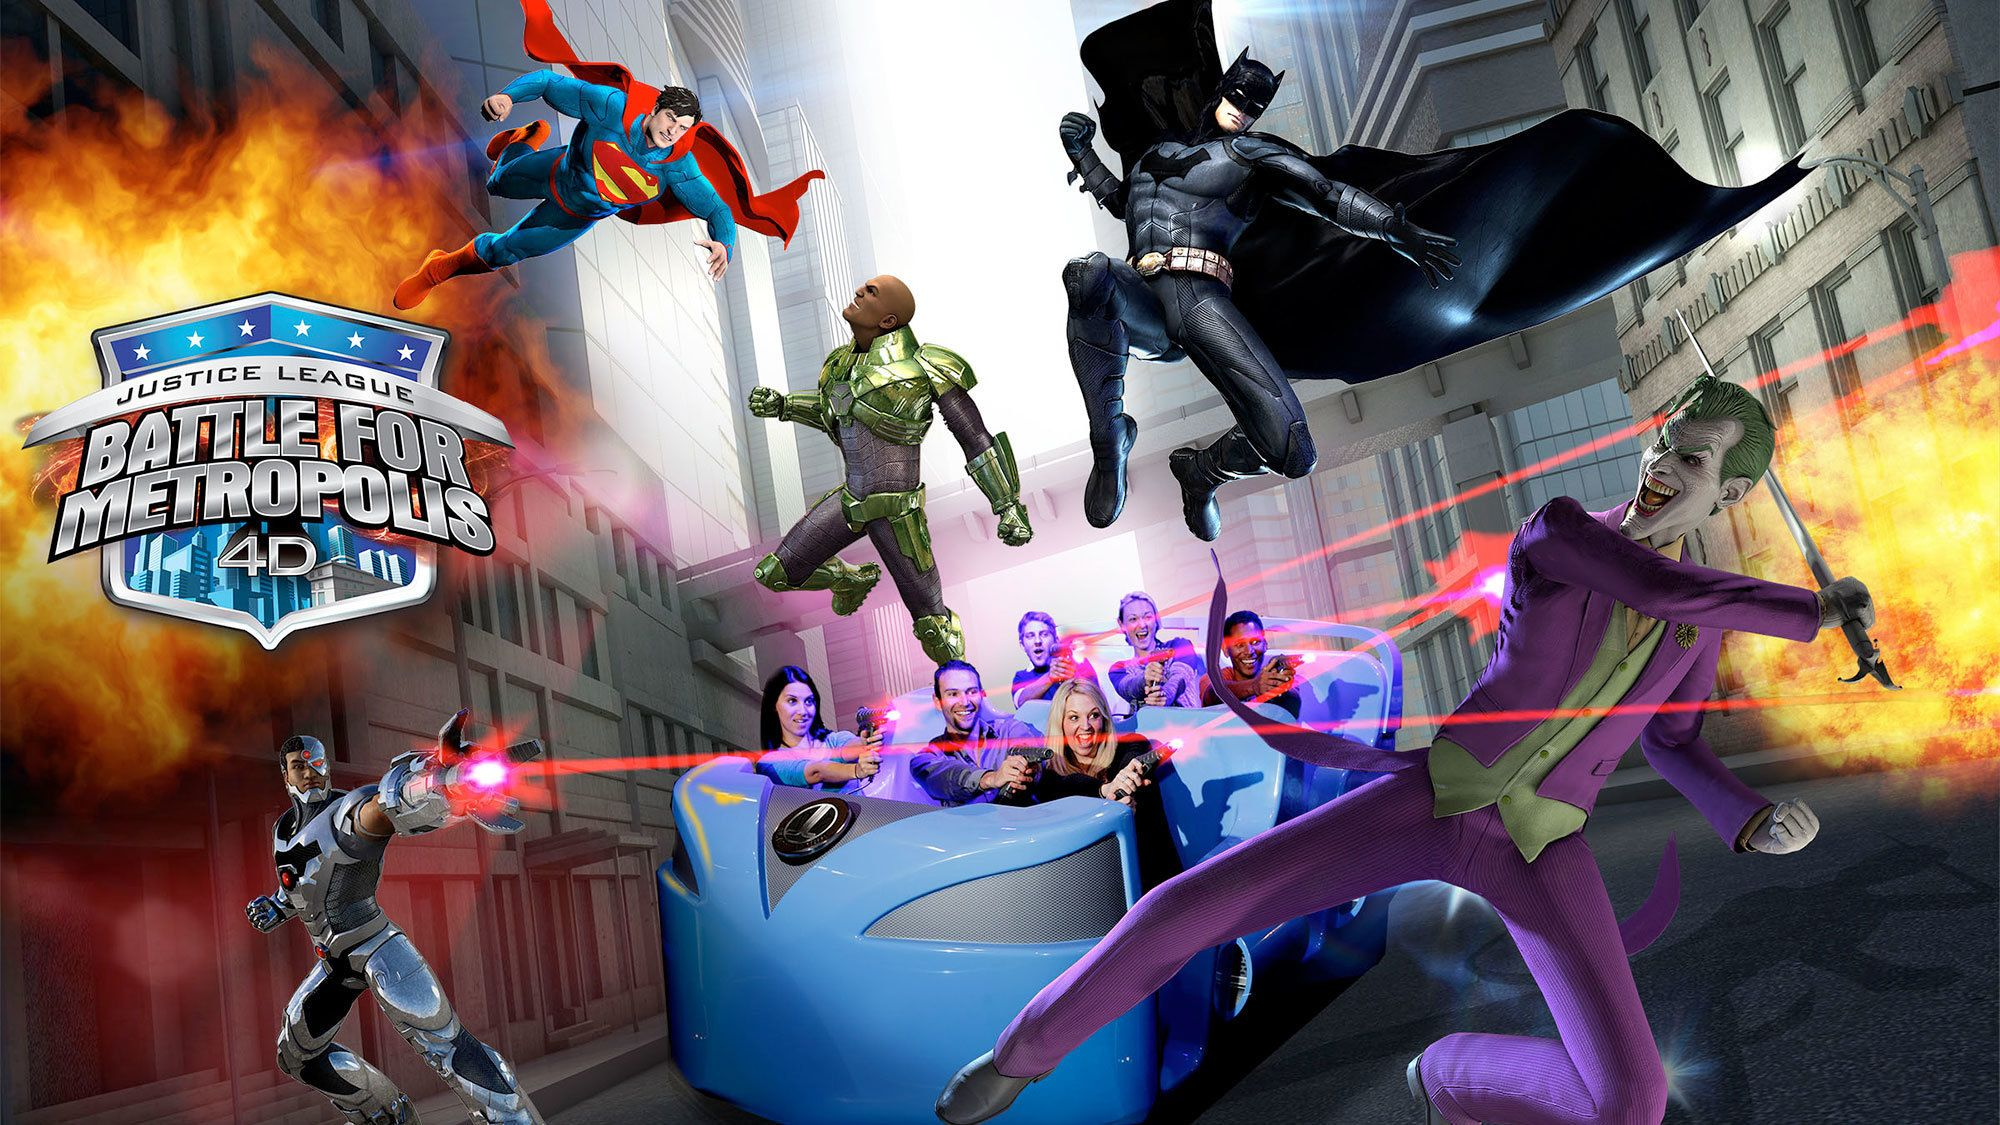 Justice League Battle for Metropolis ride at Six Flags Mexico